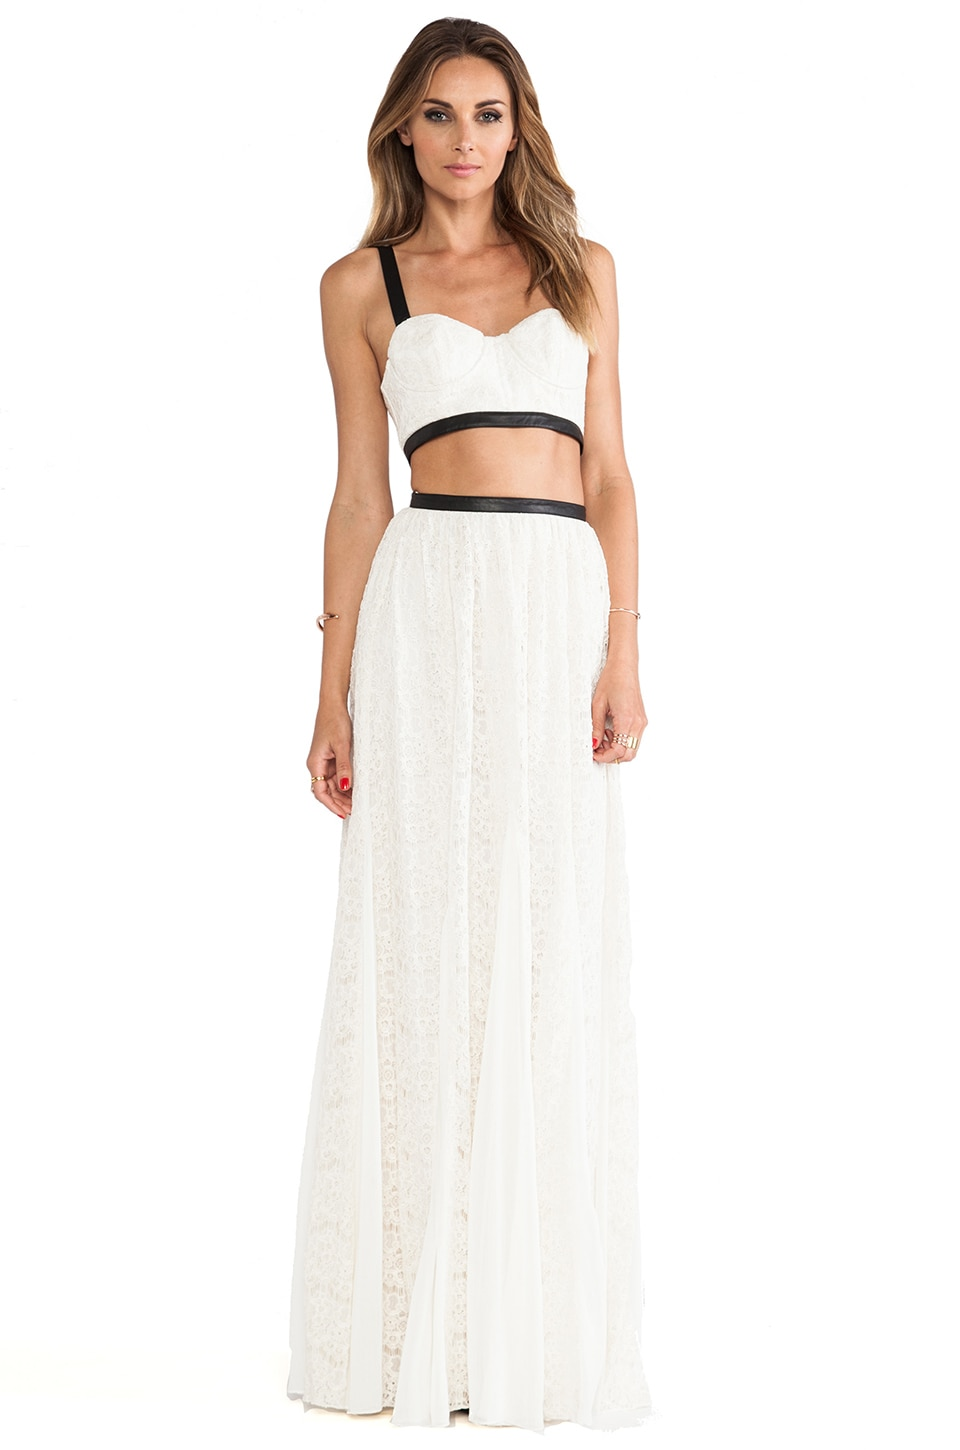 Alice + Olivia Sveva Cut Out Maxi Dress in Ivory